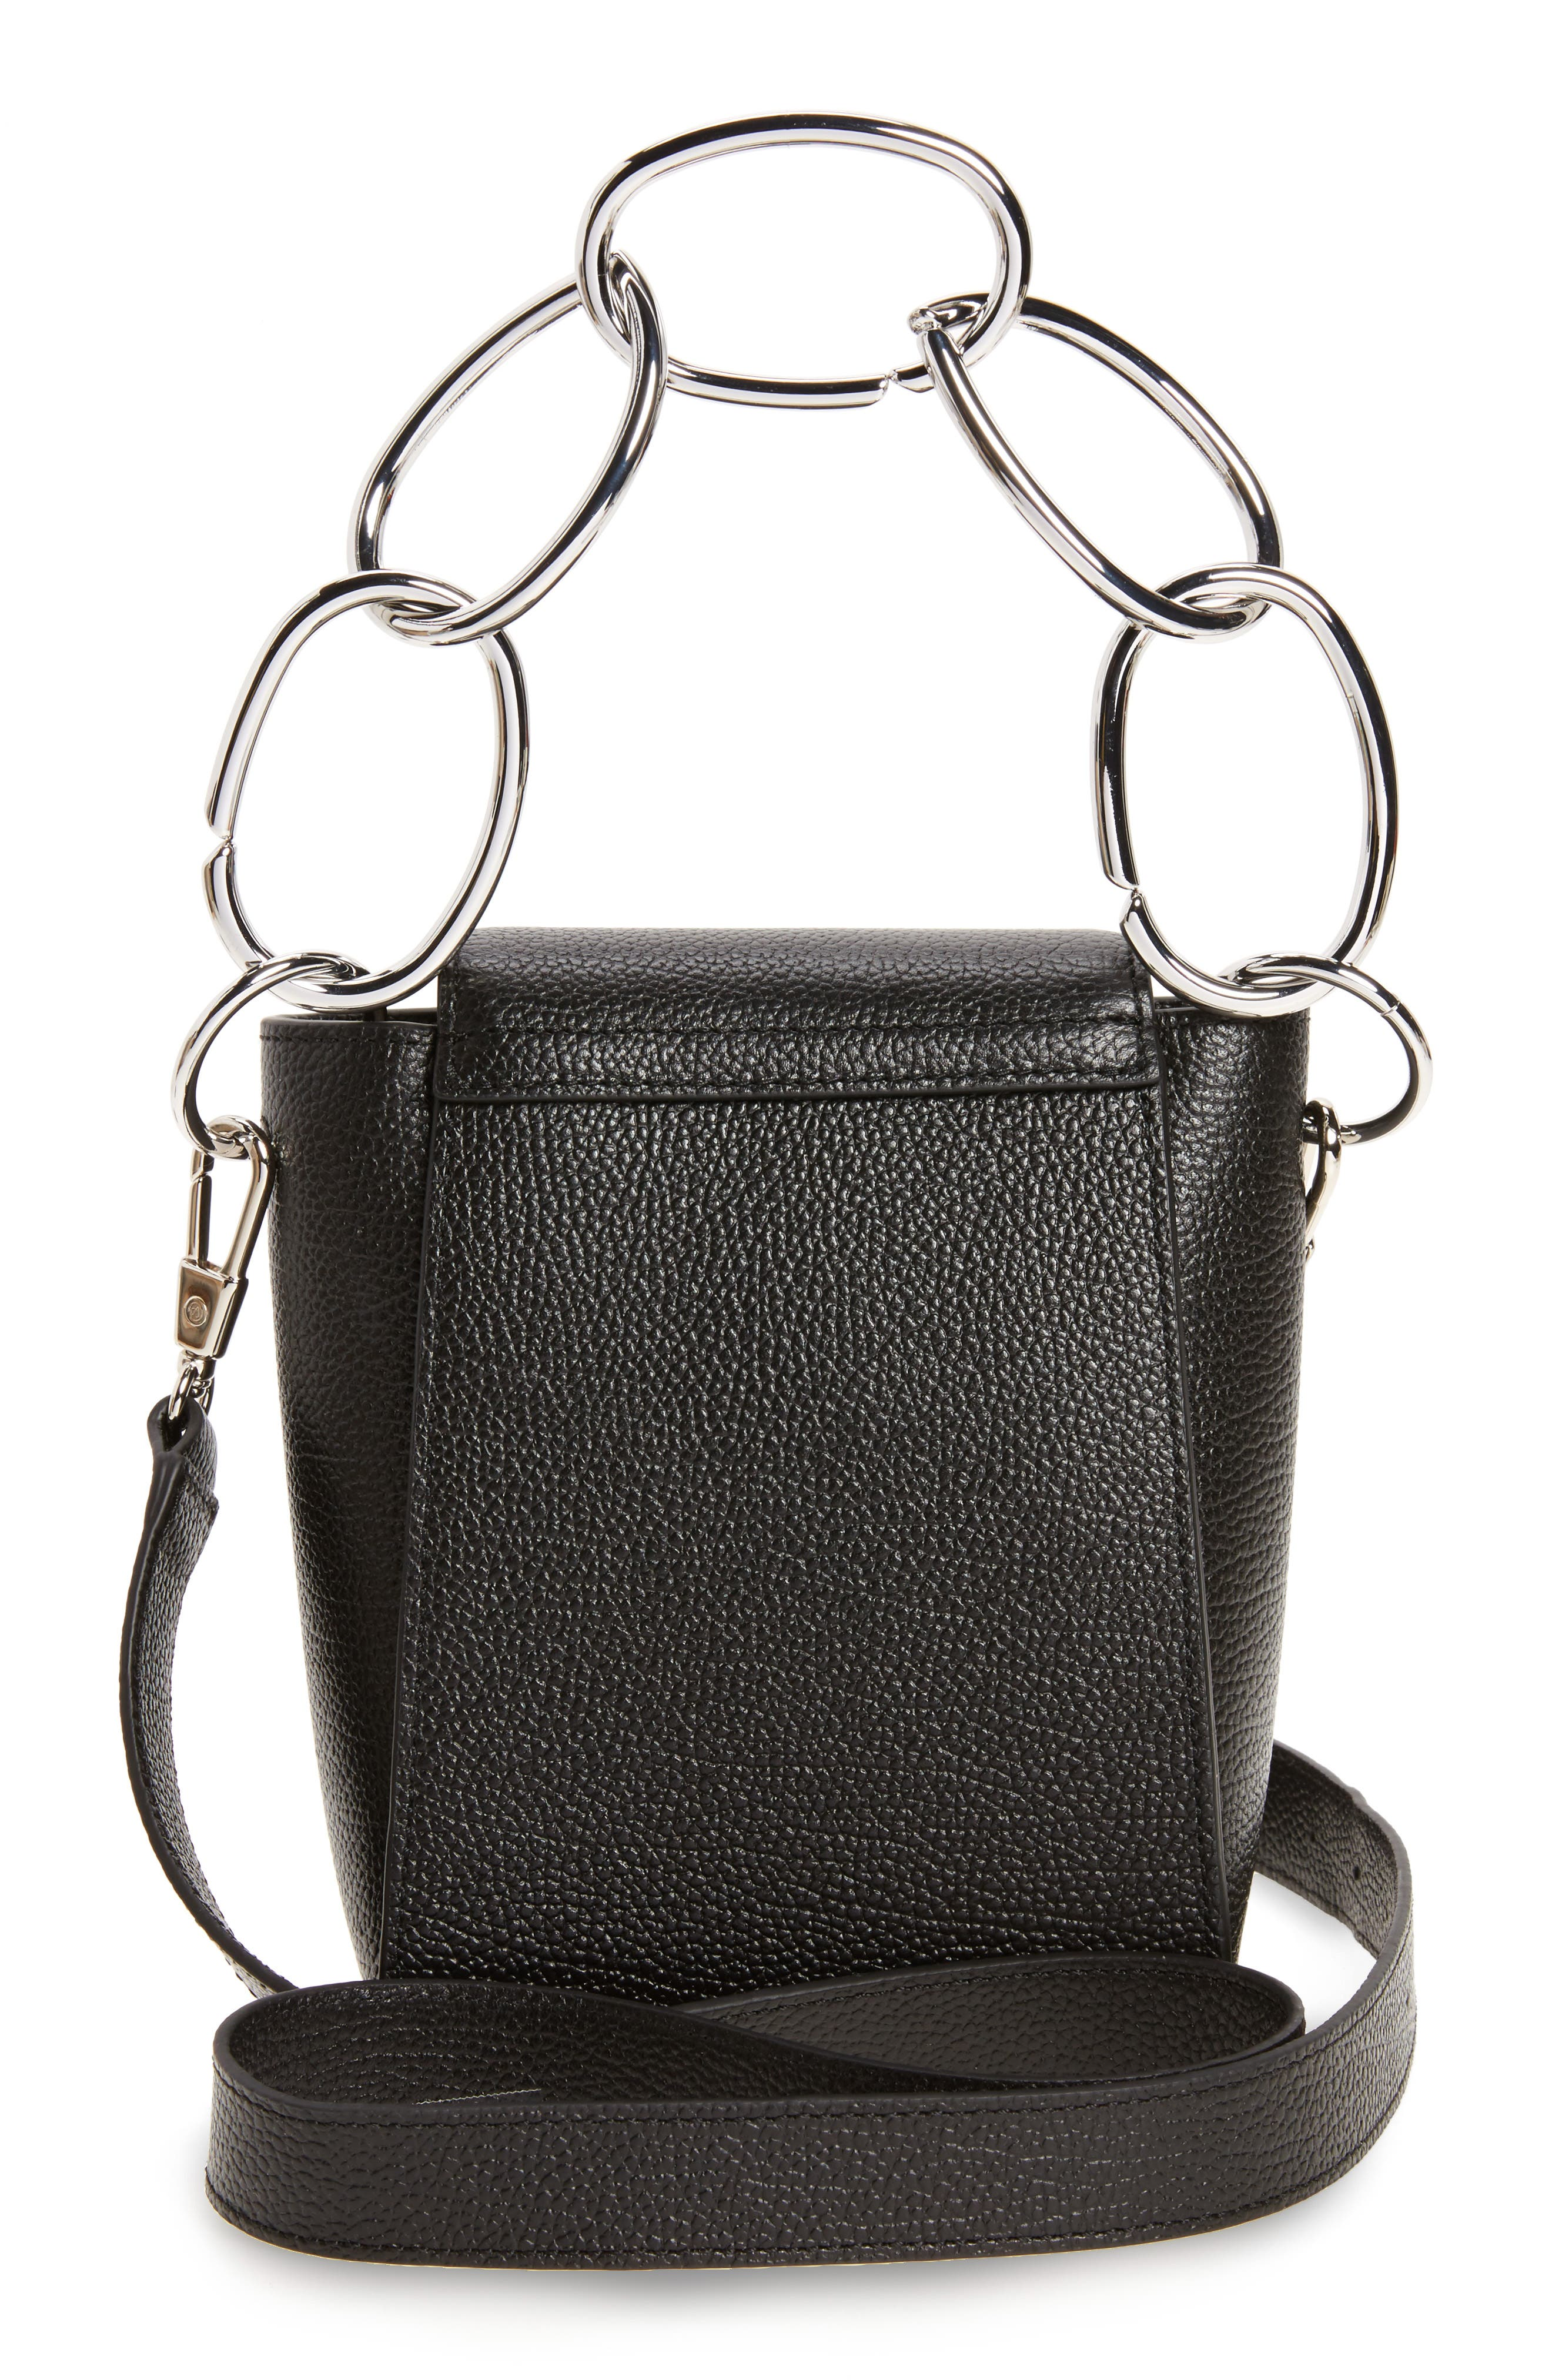 Alternate Image 2  - 3.1 Phillip Lim Small Leigh Top Handle Leather Satchel